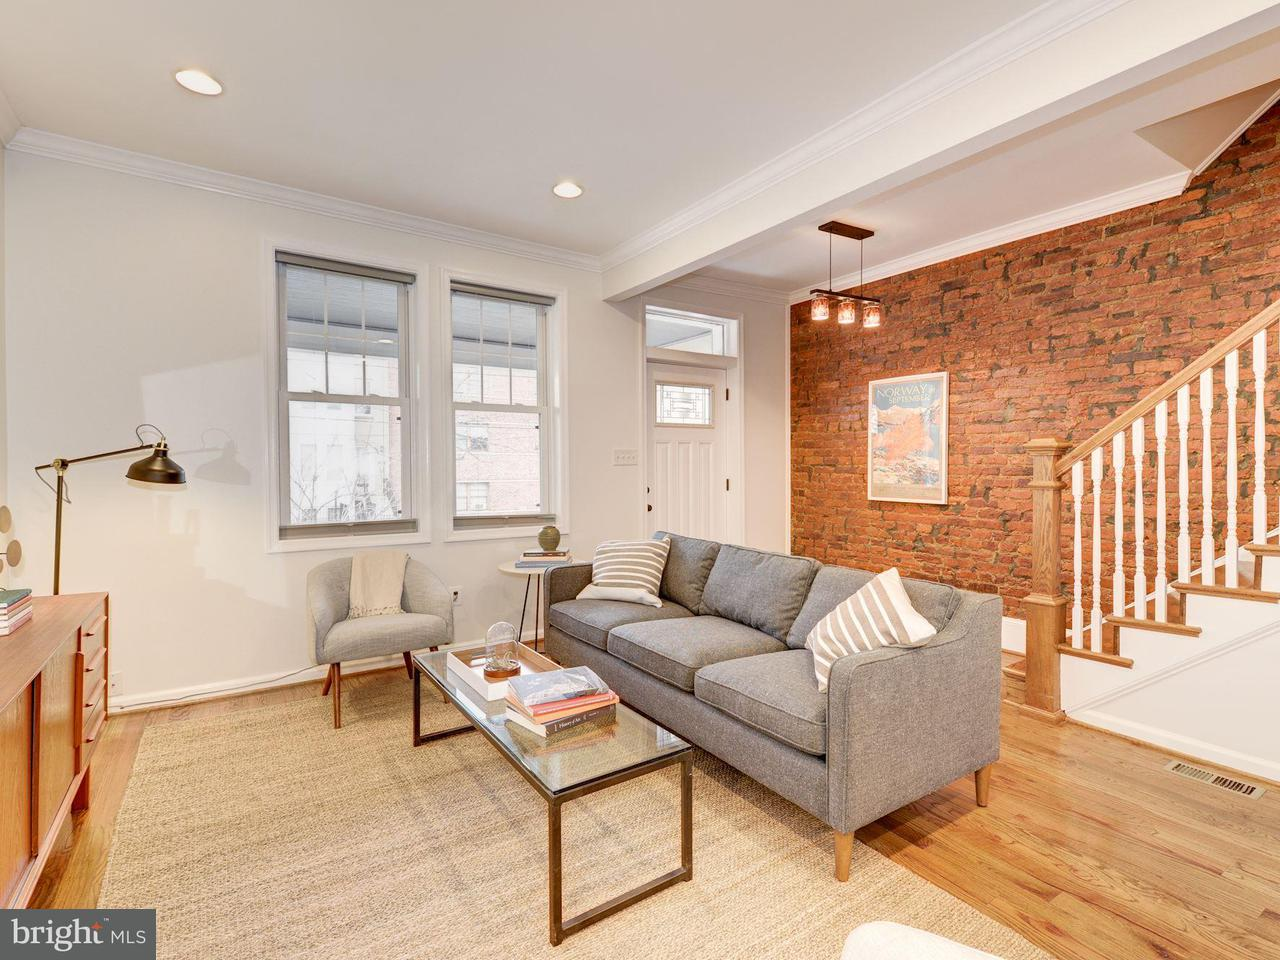 Single Family for Sale at 619 Girard St NE Washington, District Of Columbia 20017 United States